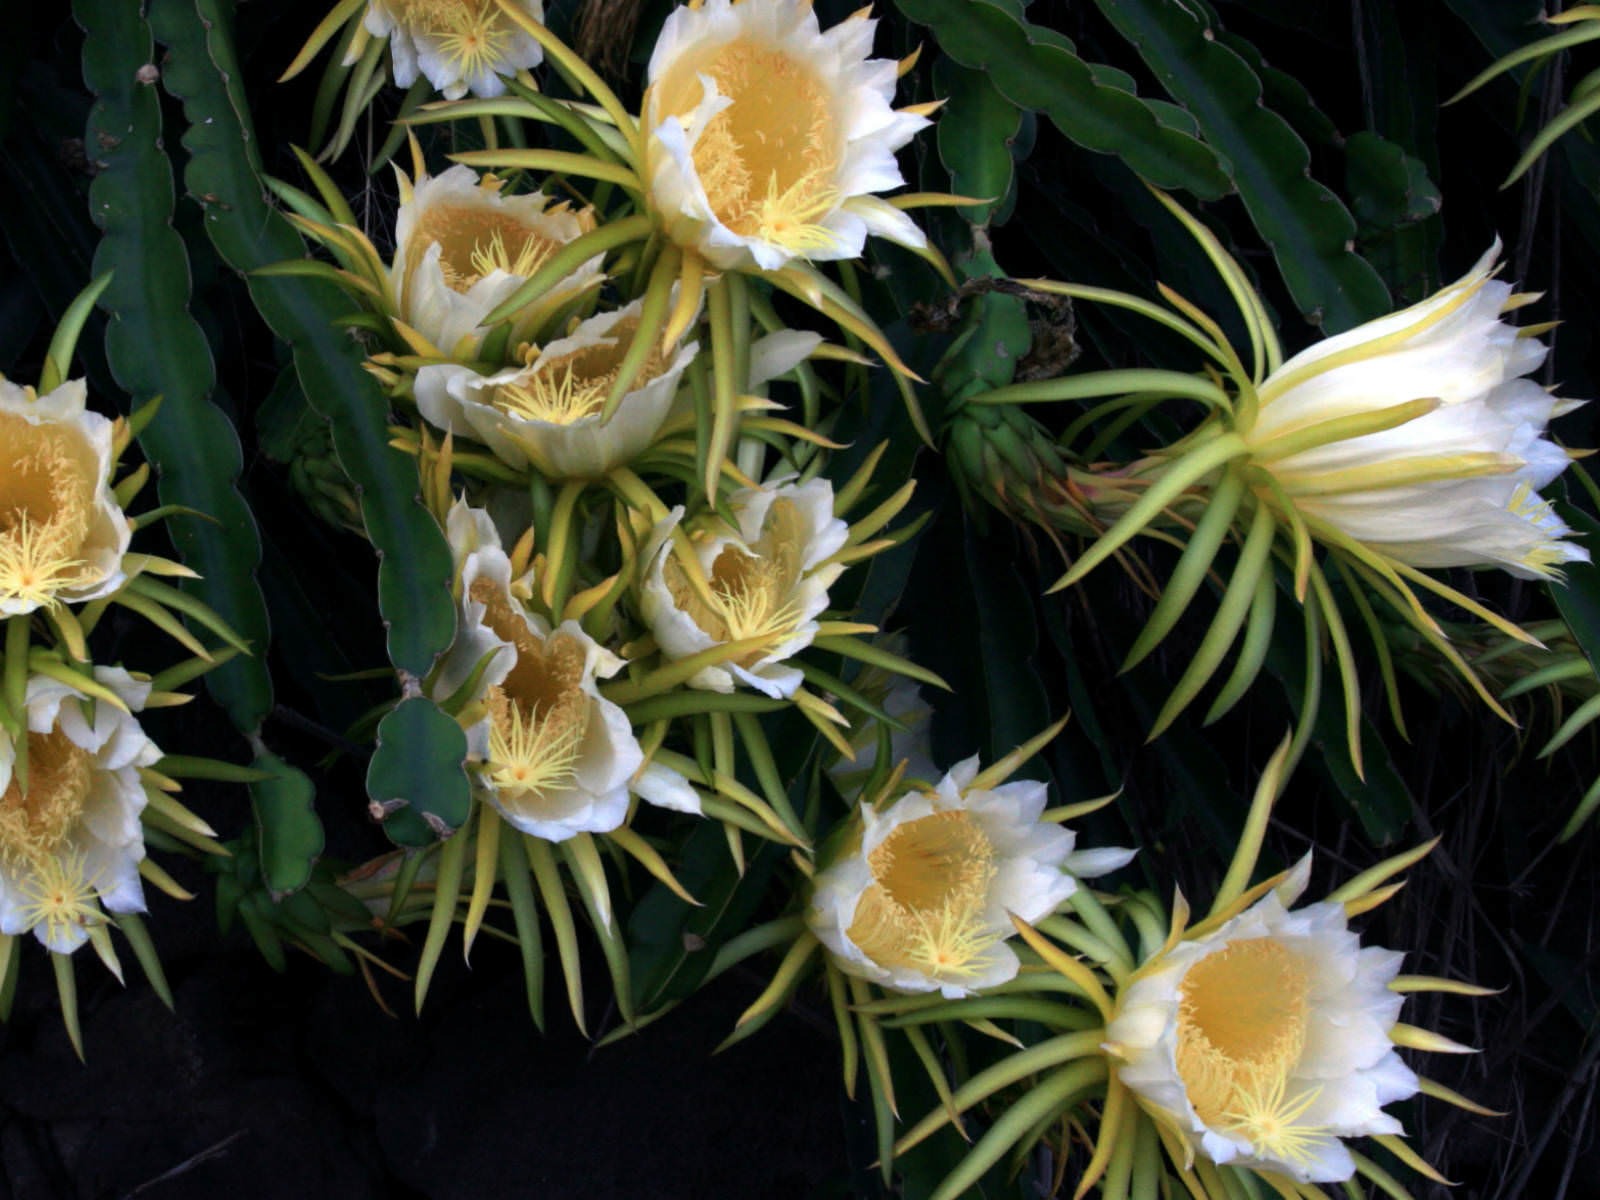 hylocereus undatus night blooming cereus dragon fruit